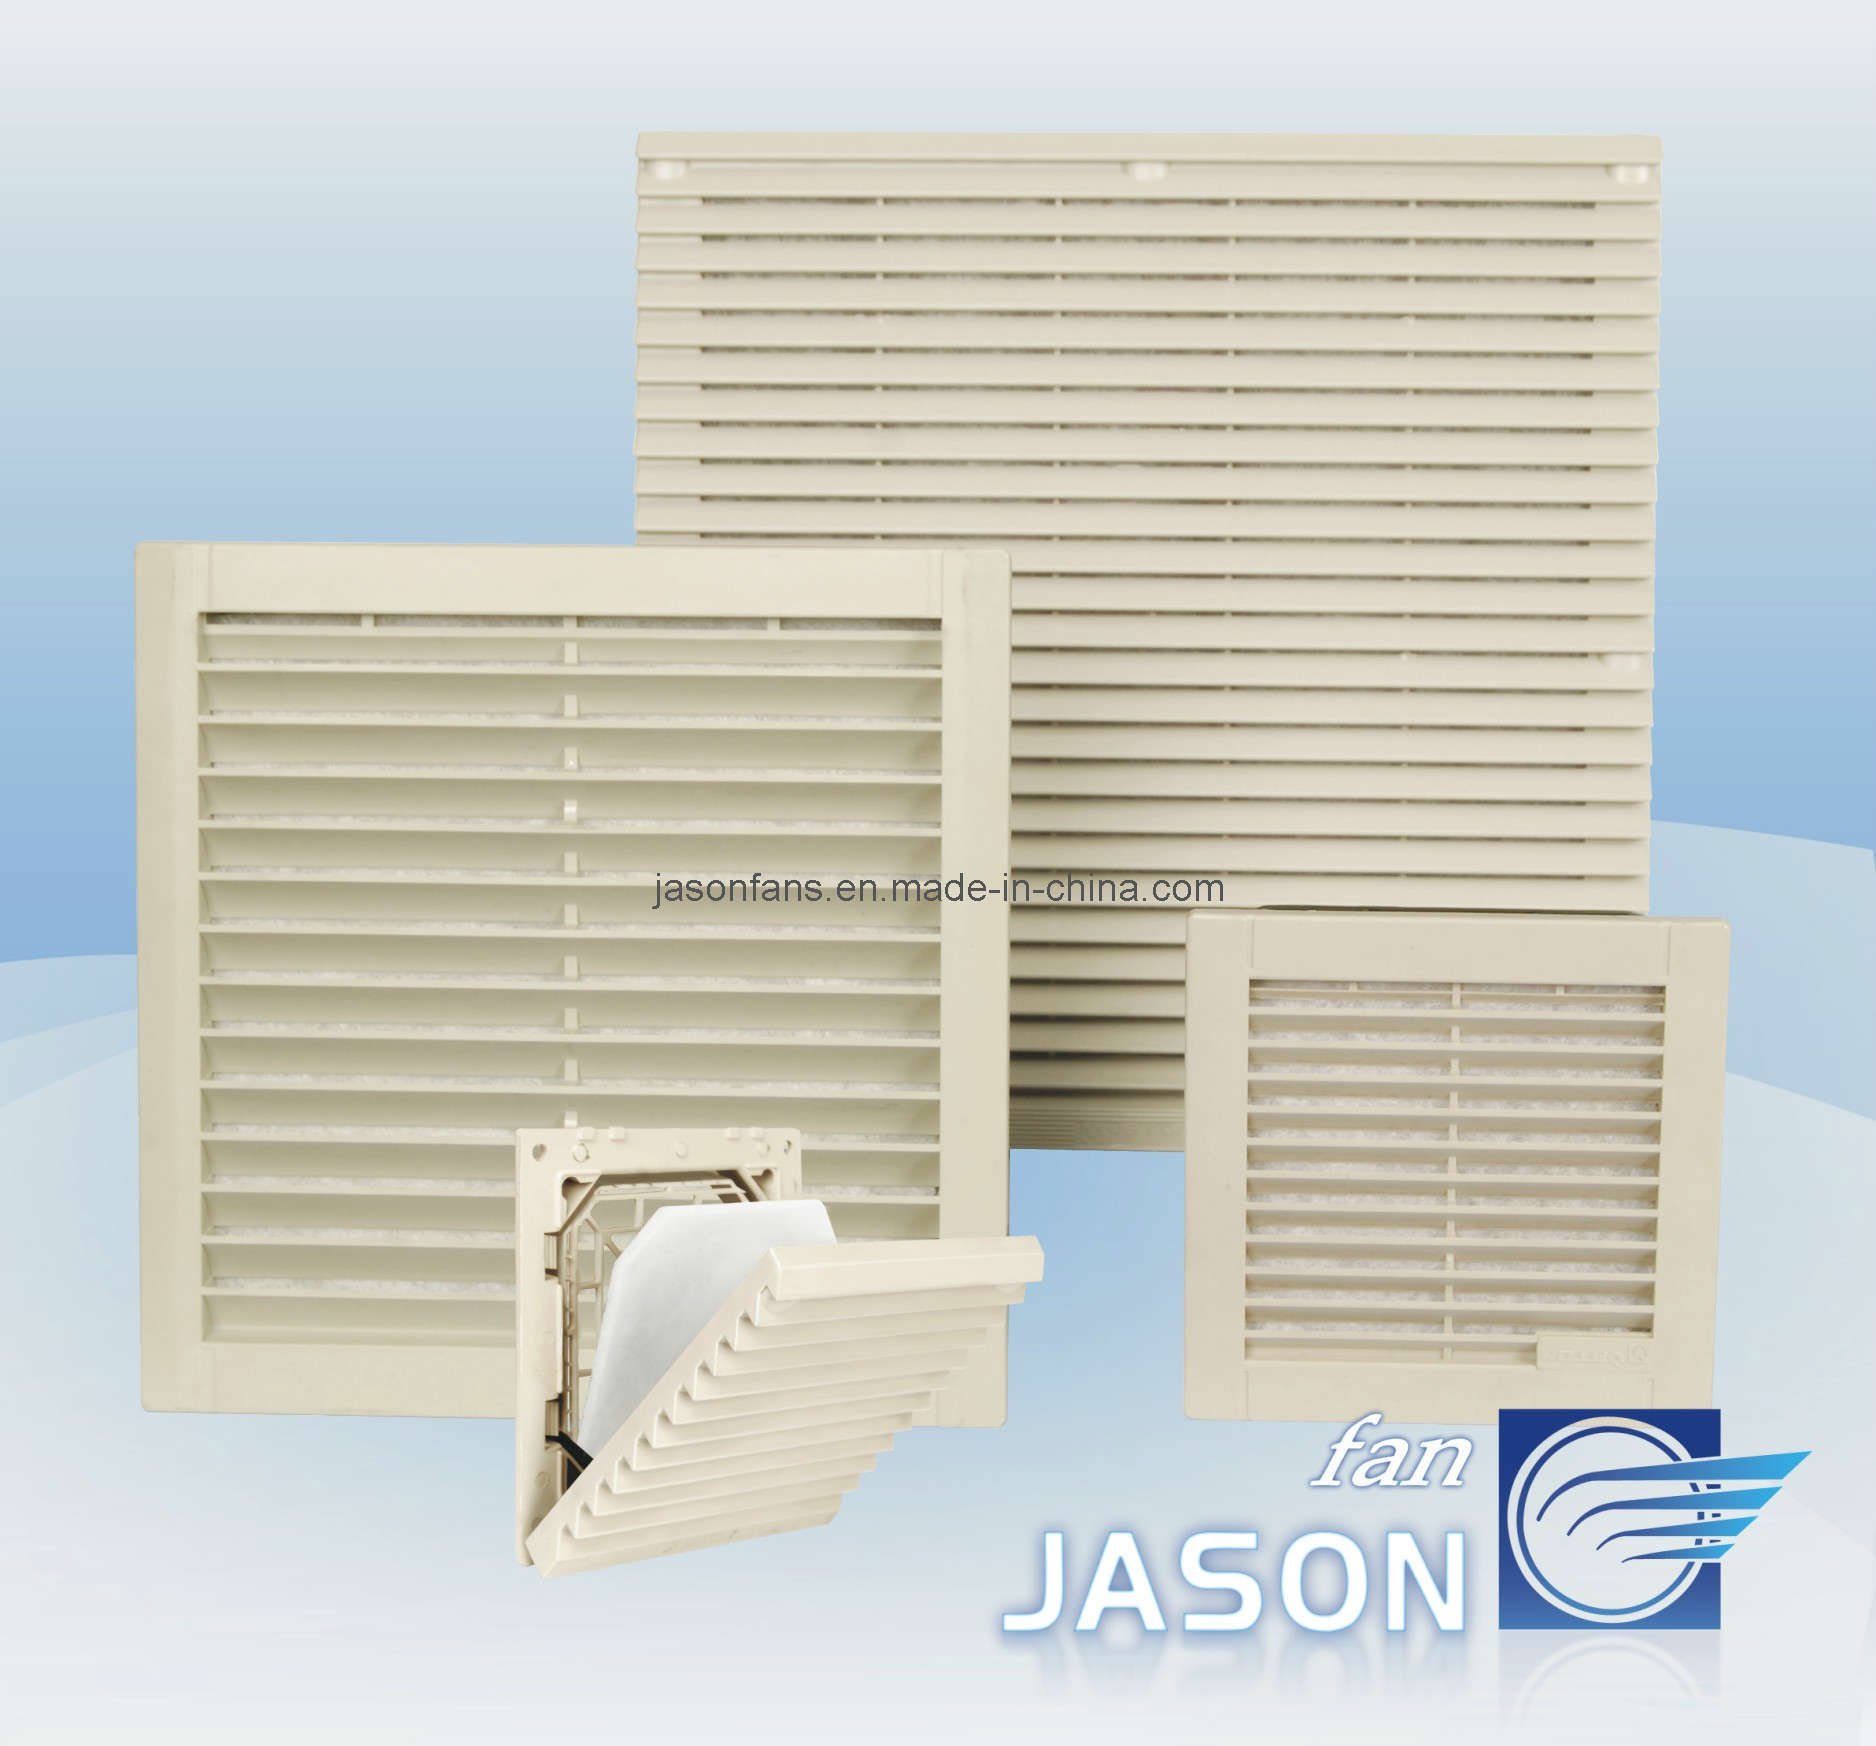 China Air Filter & Ventilation Fan Photos & Pictures made in china  #203D85